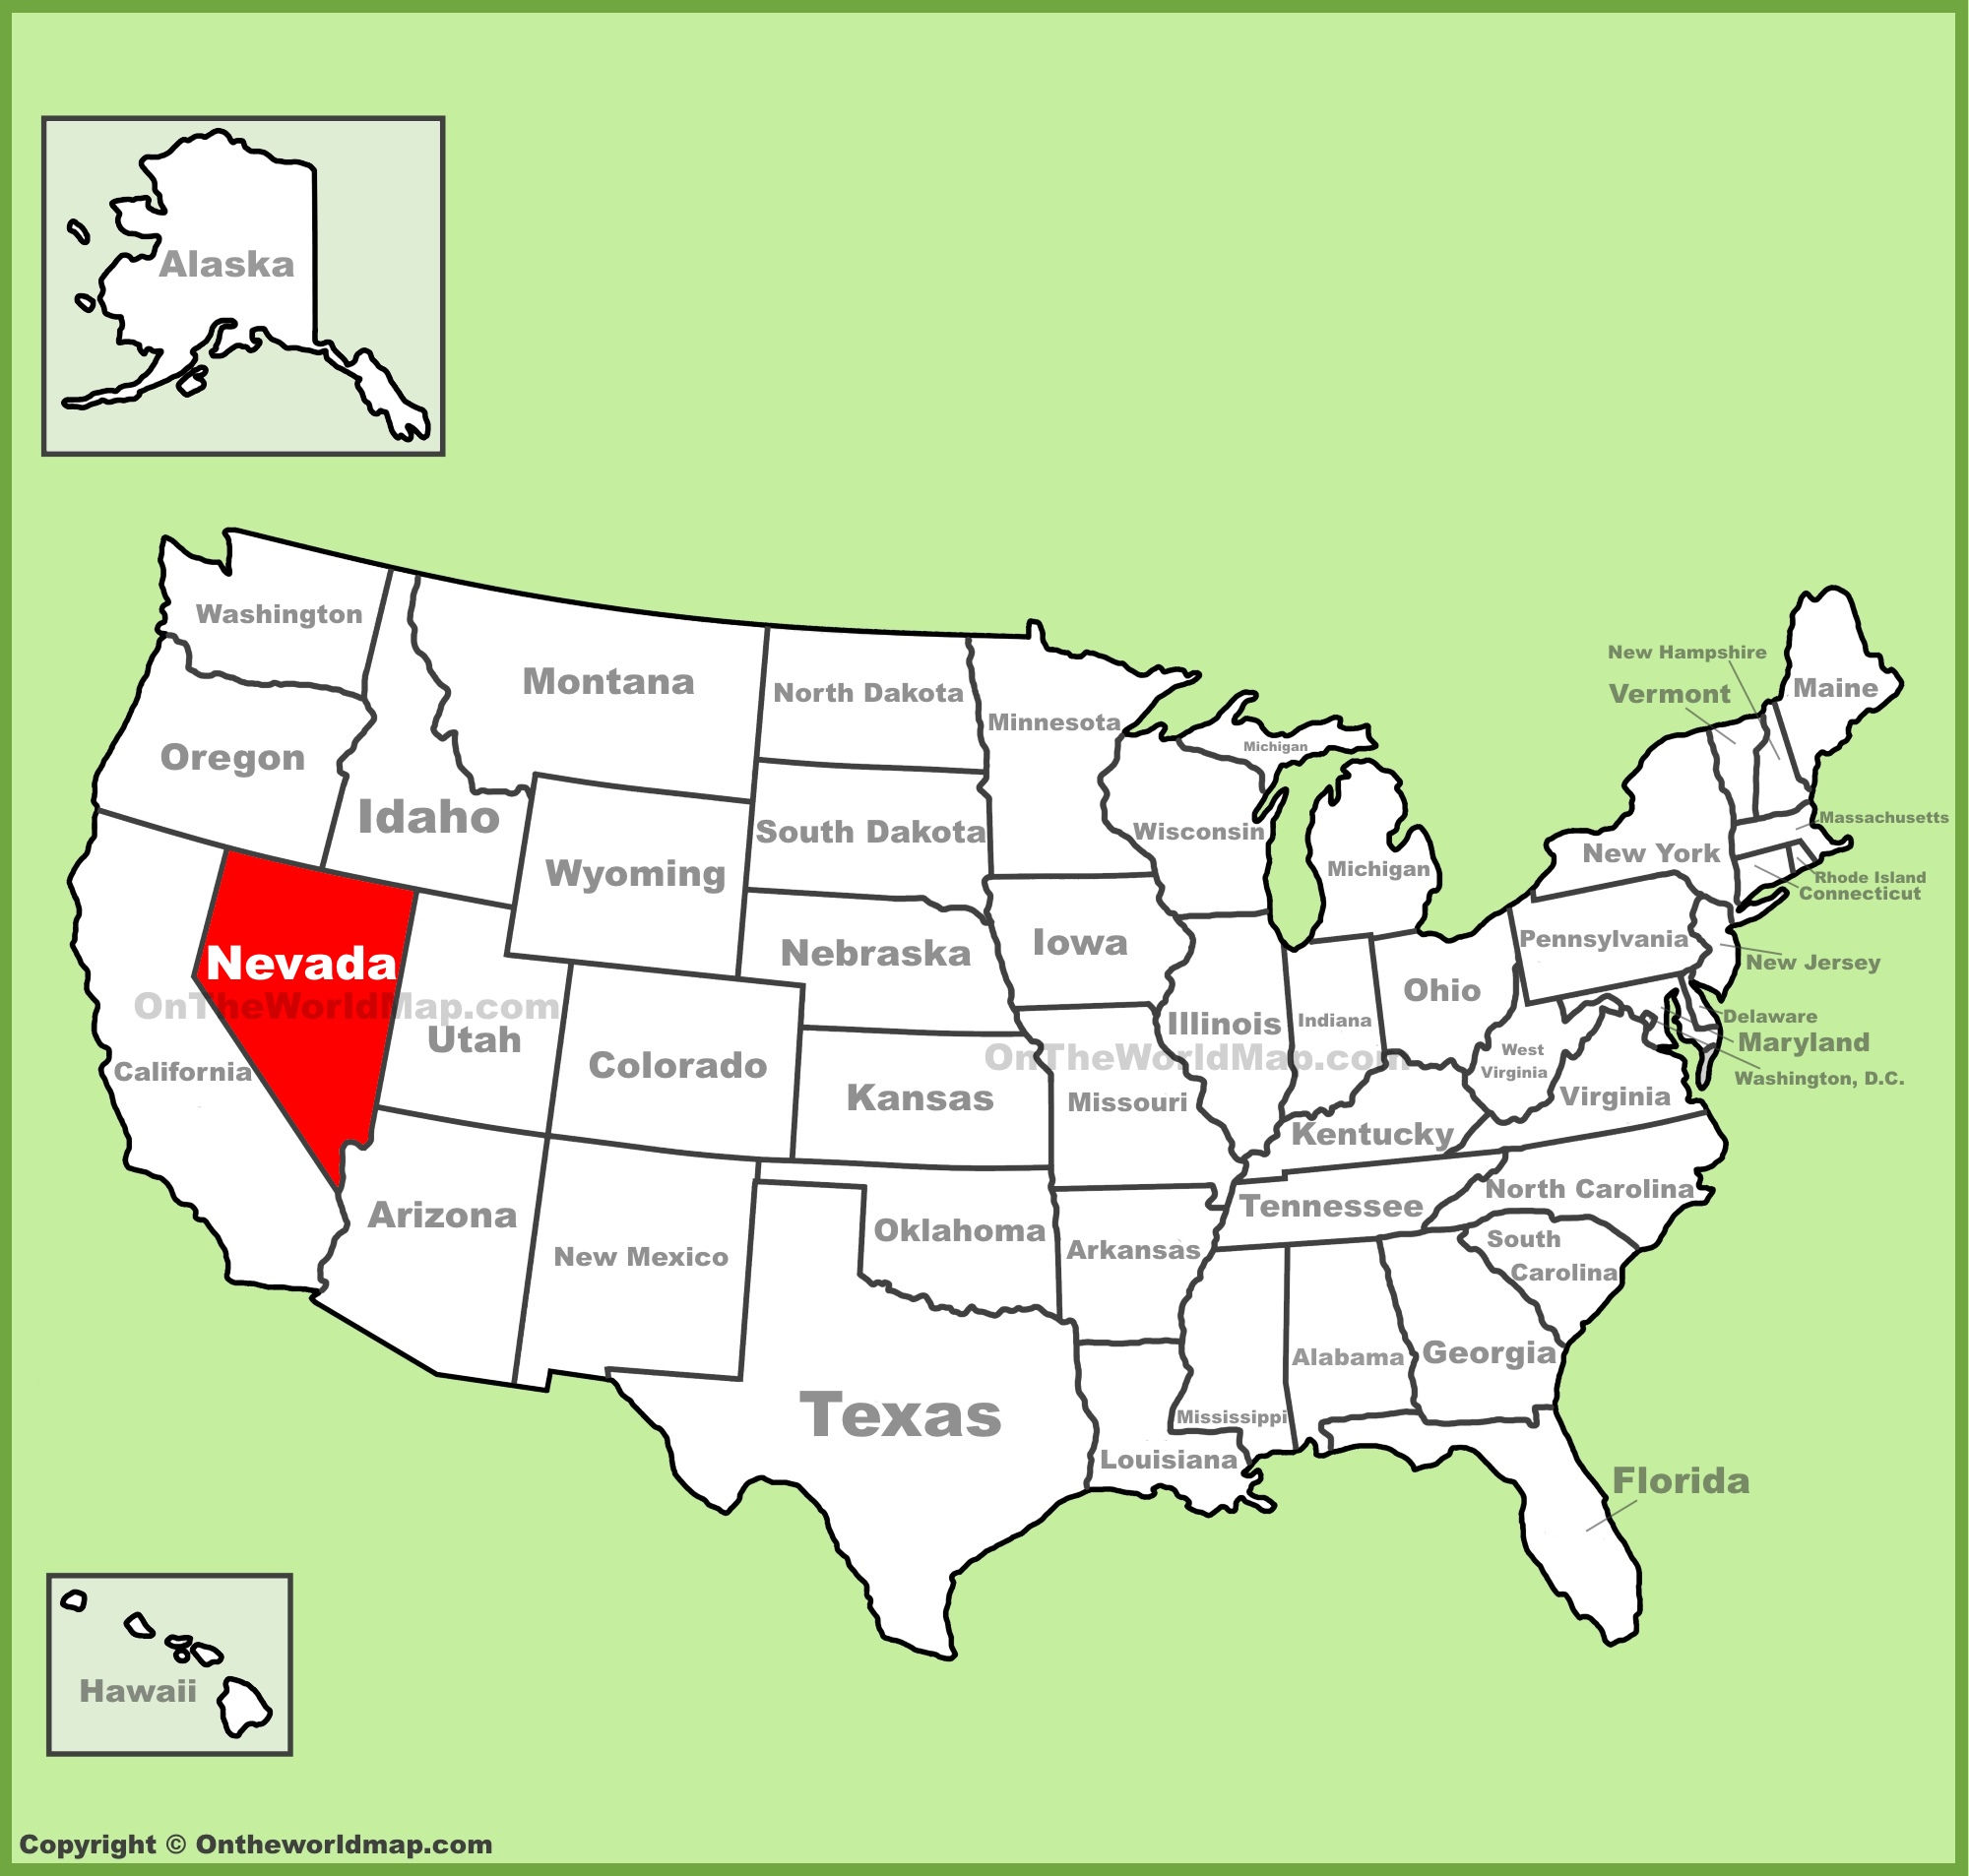 nevada state maps  usa  maps of nevada (nv) - full size · nevada location map